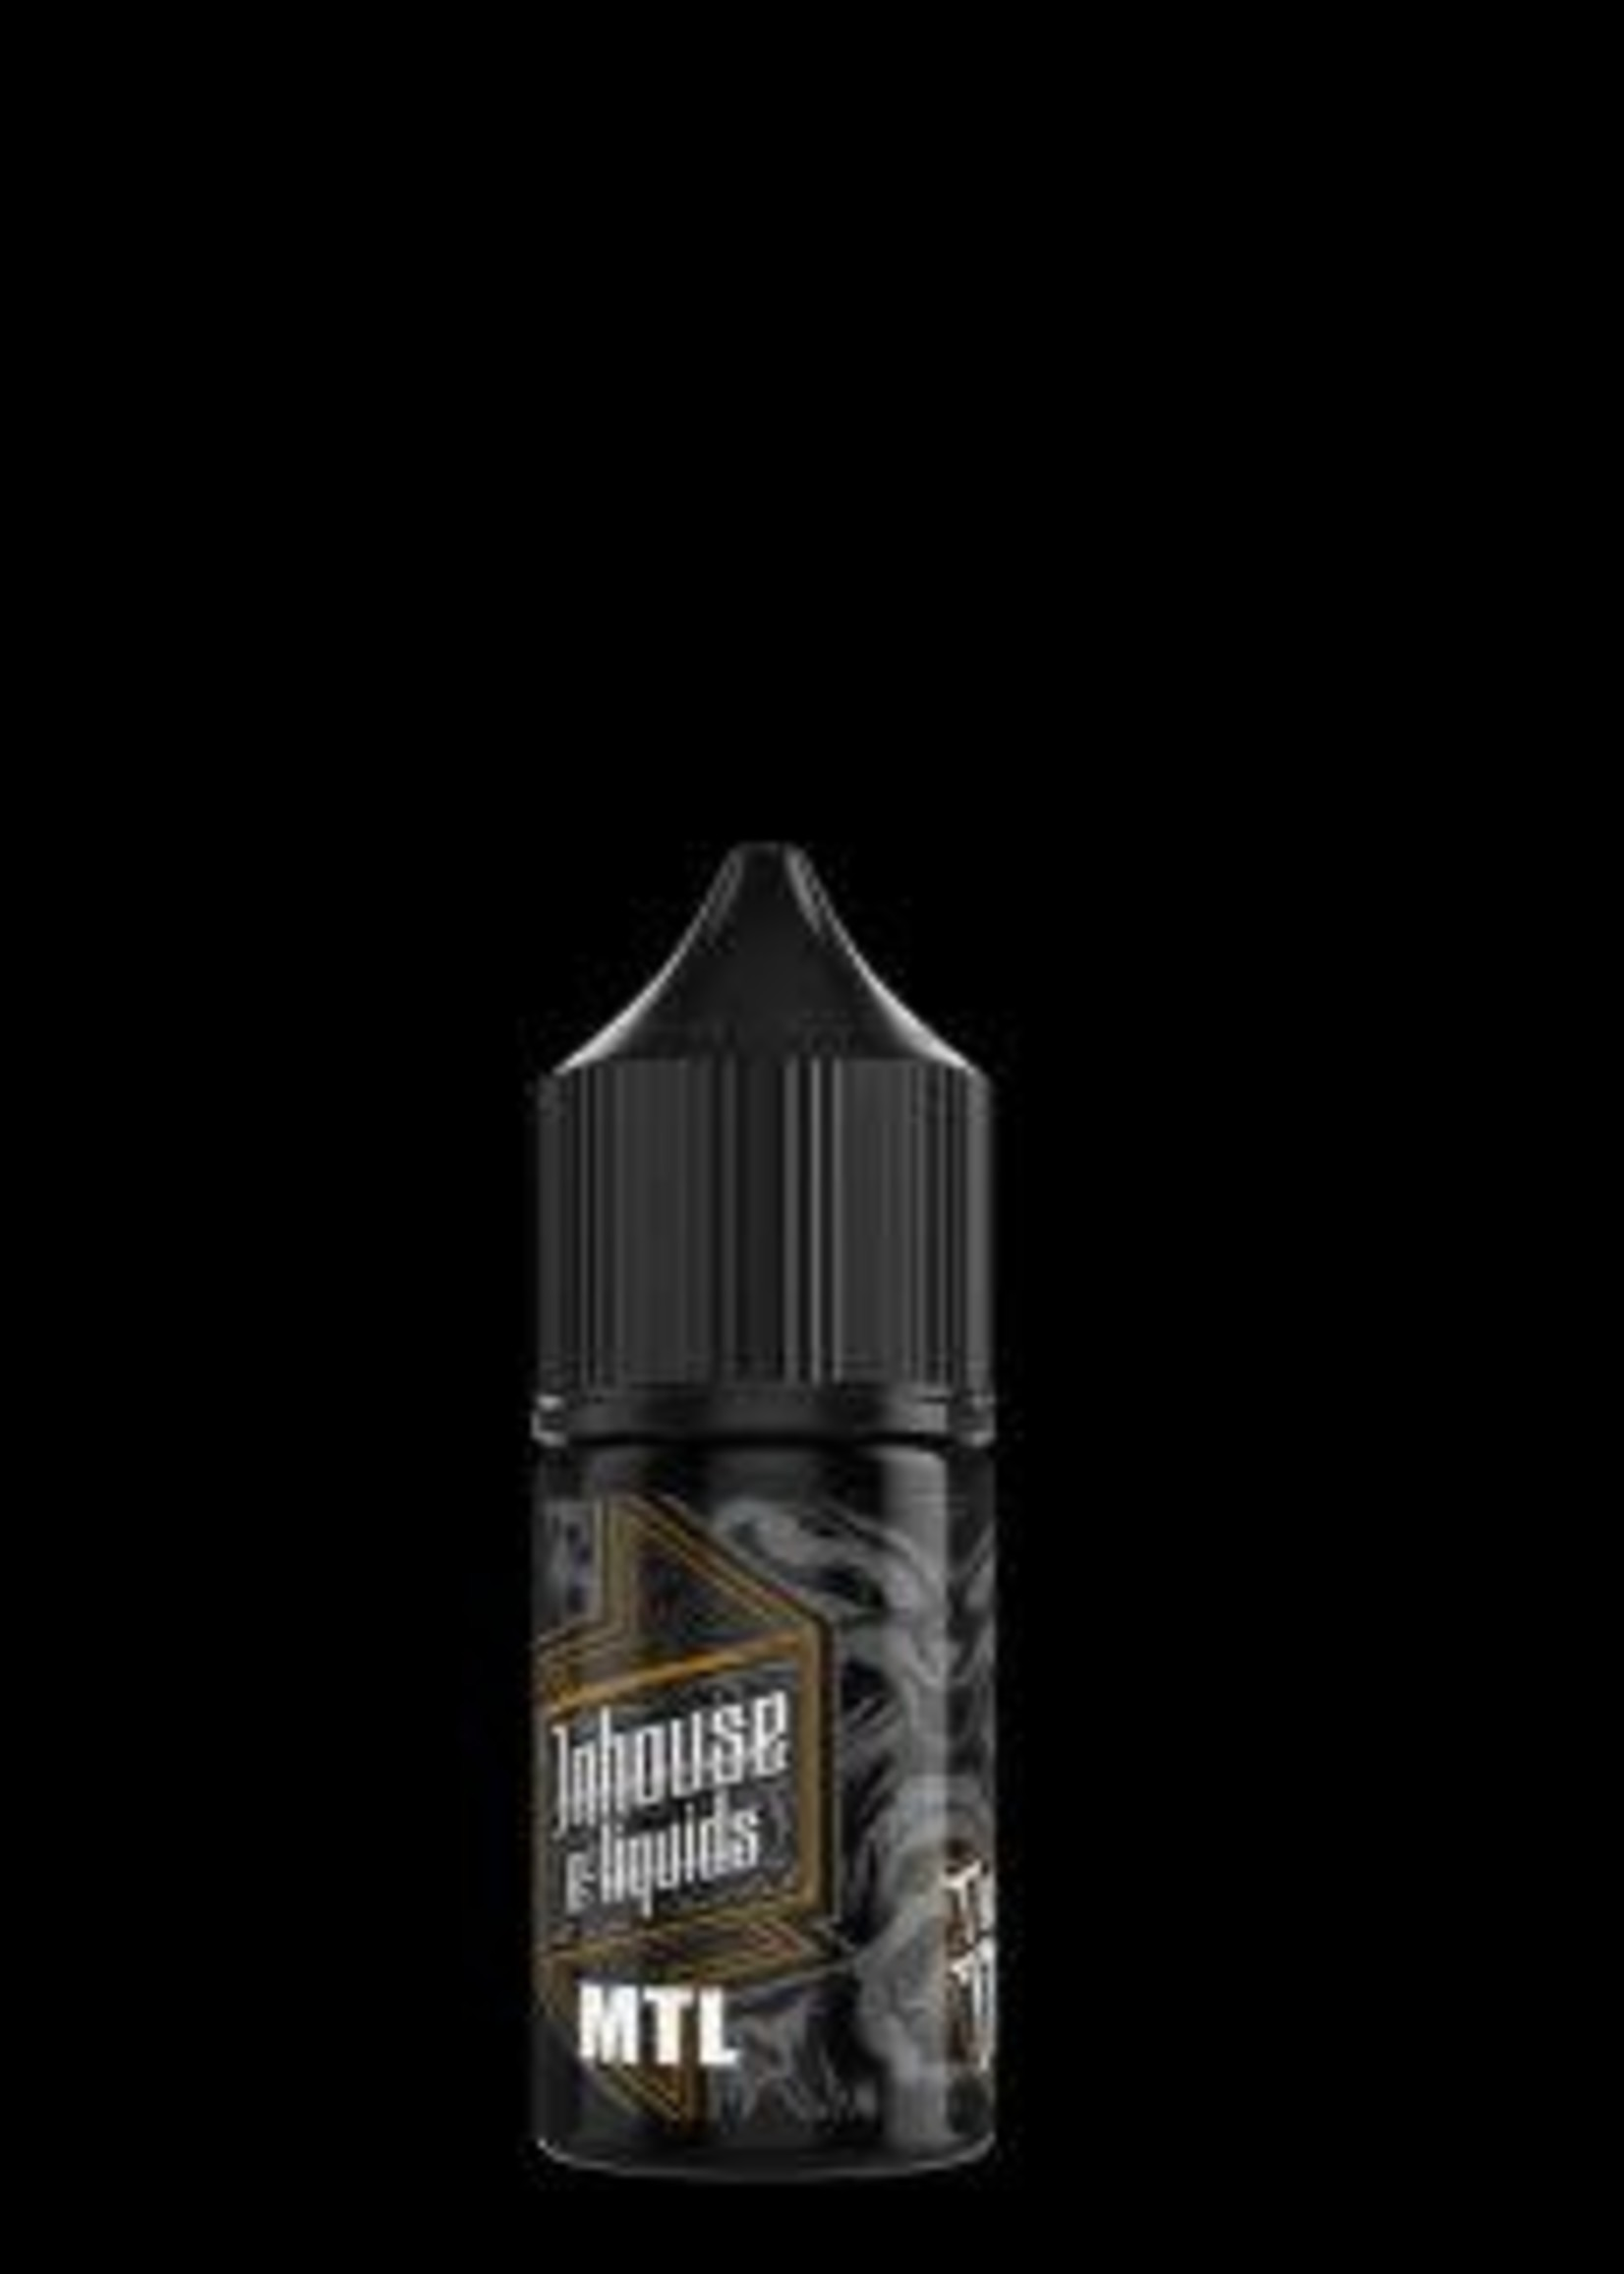 Vape flavour - The toffee MTL 30ml- 12mg